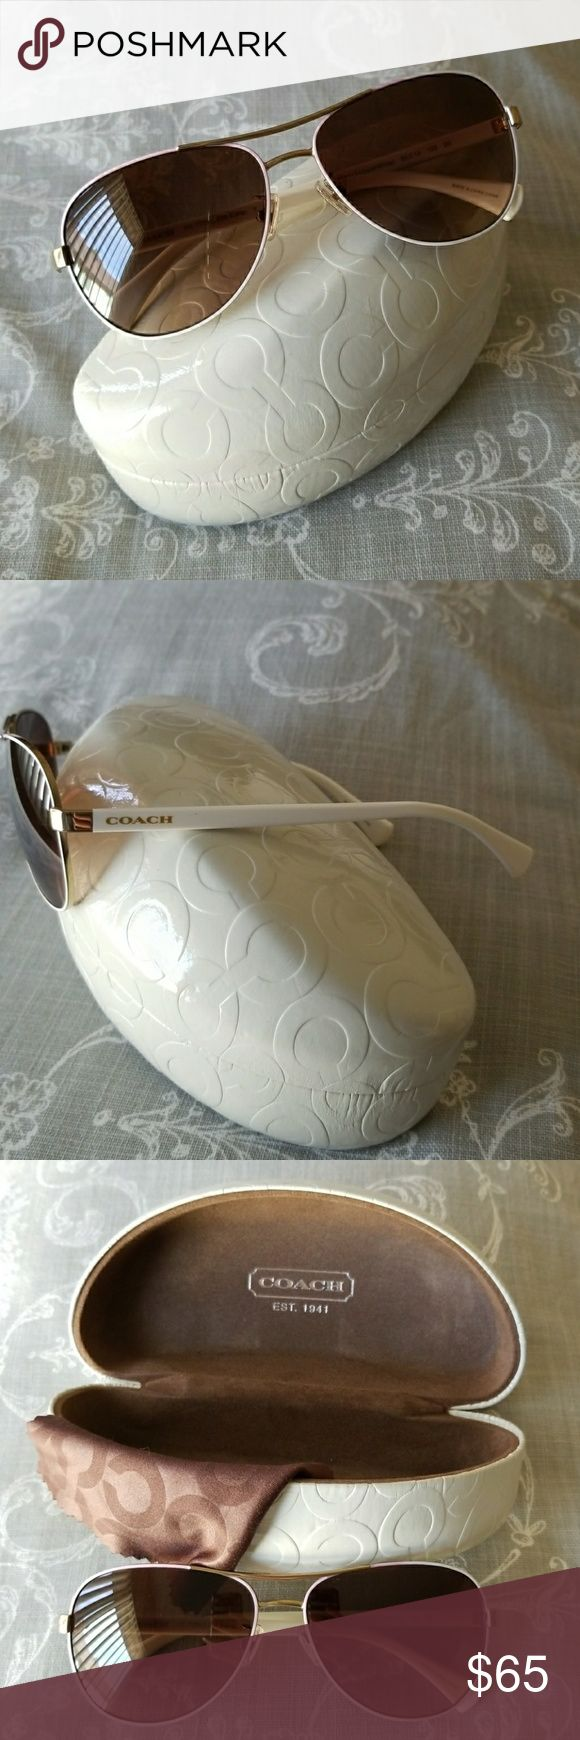 Gold & white Coach sunglasses Gently used/like new Coach sunglasses. Holding case and cleaning cloth included. Coach Accessories Sunglasses